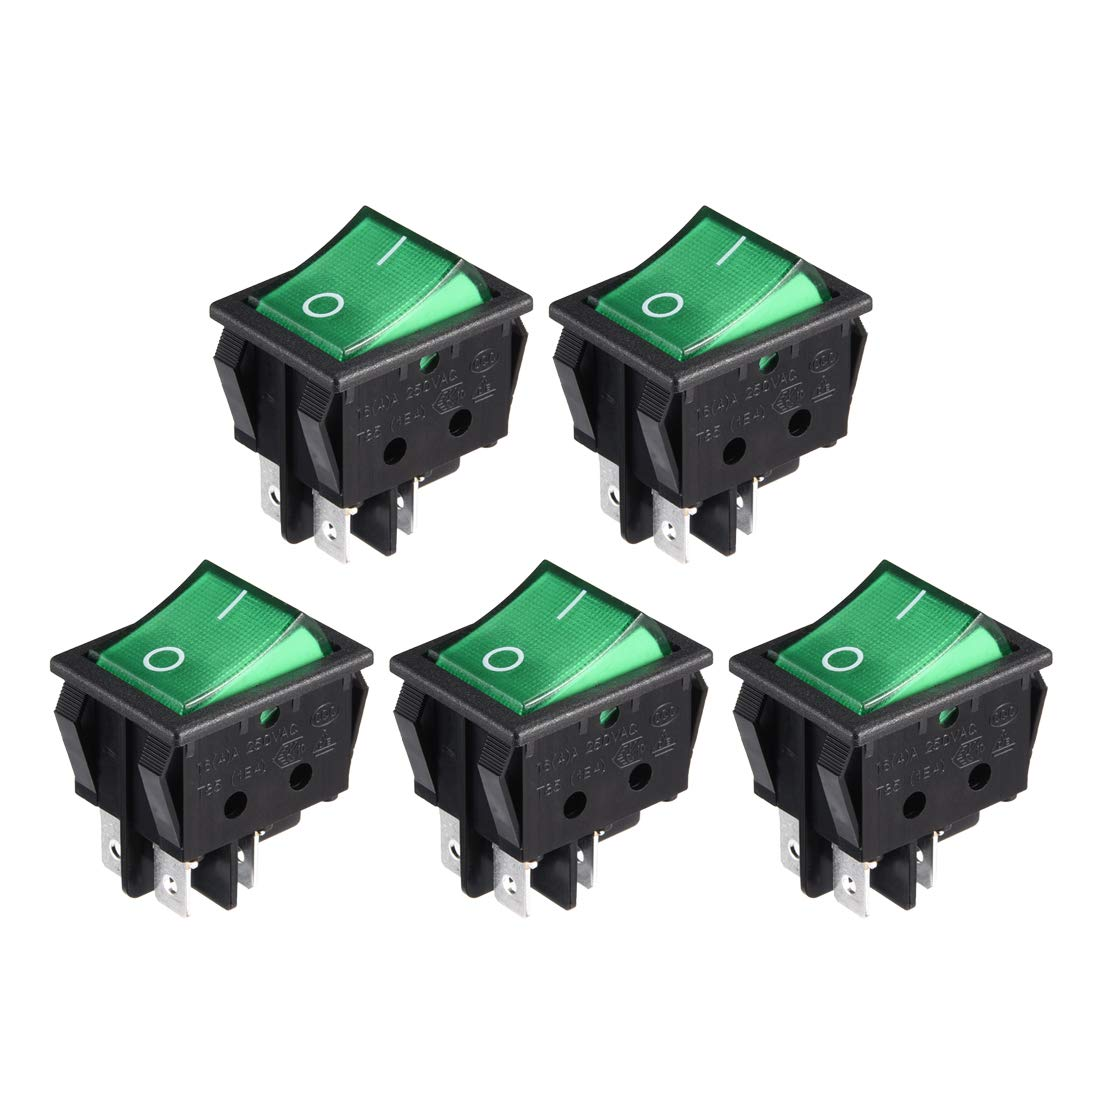 uxcell 5Pcs AC 20A/125V 22A/250V DPST 4 Terminal Boat Rocker Switches On/Off with Backlit Green Light